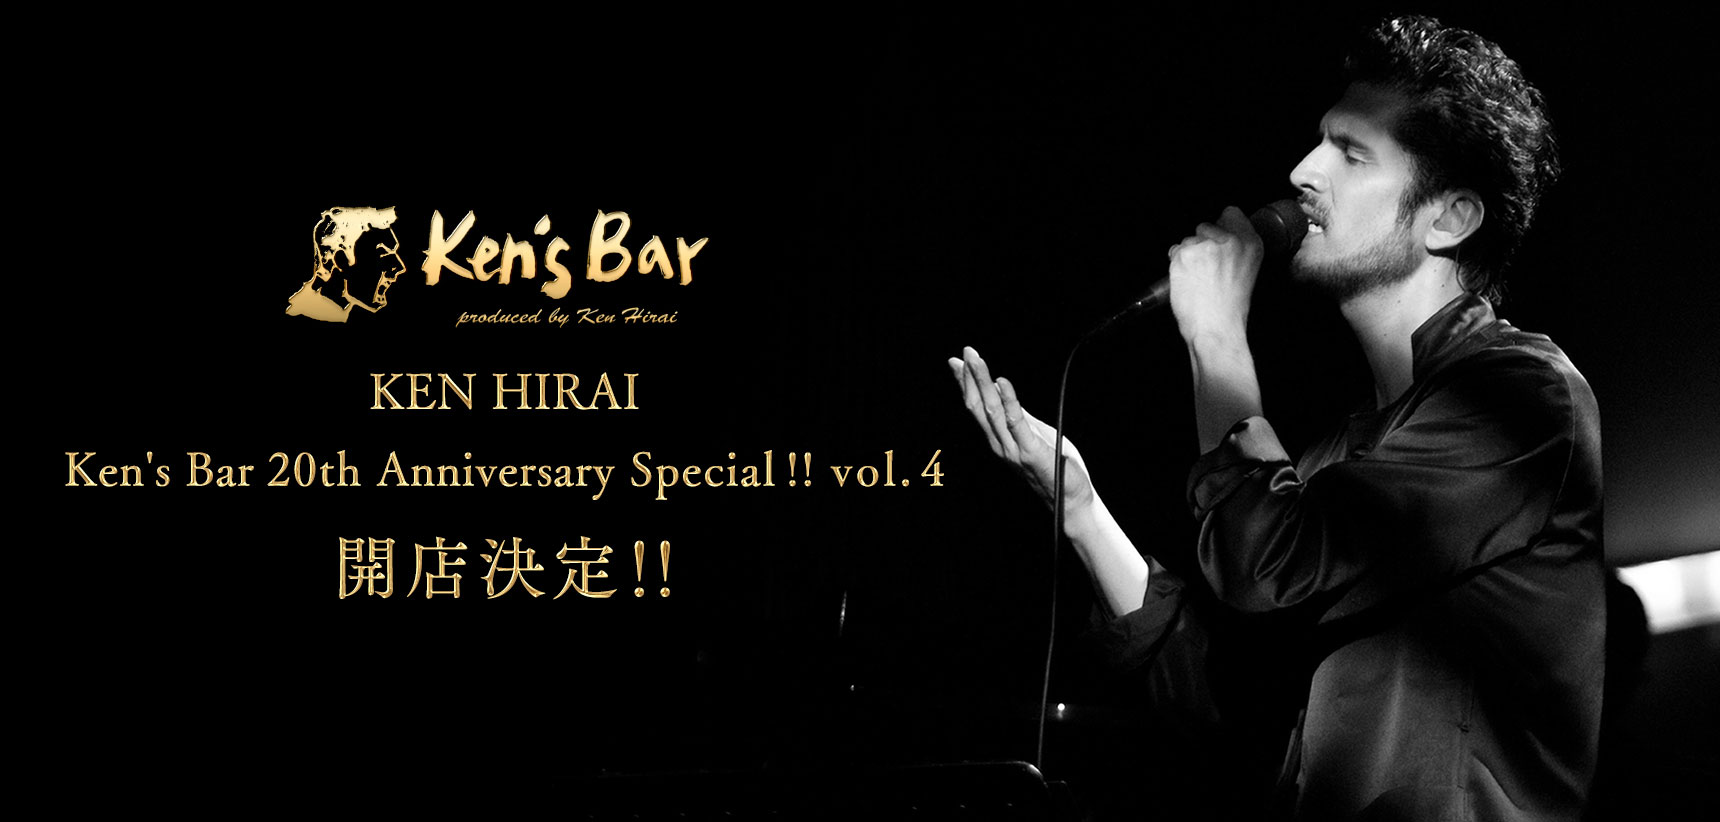 Ken's Bar 20th Anniversary Special !! vol.4 開店決定